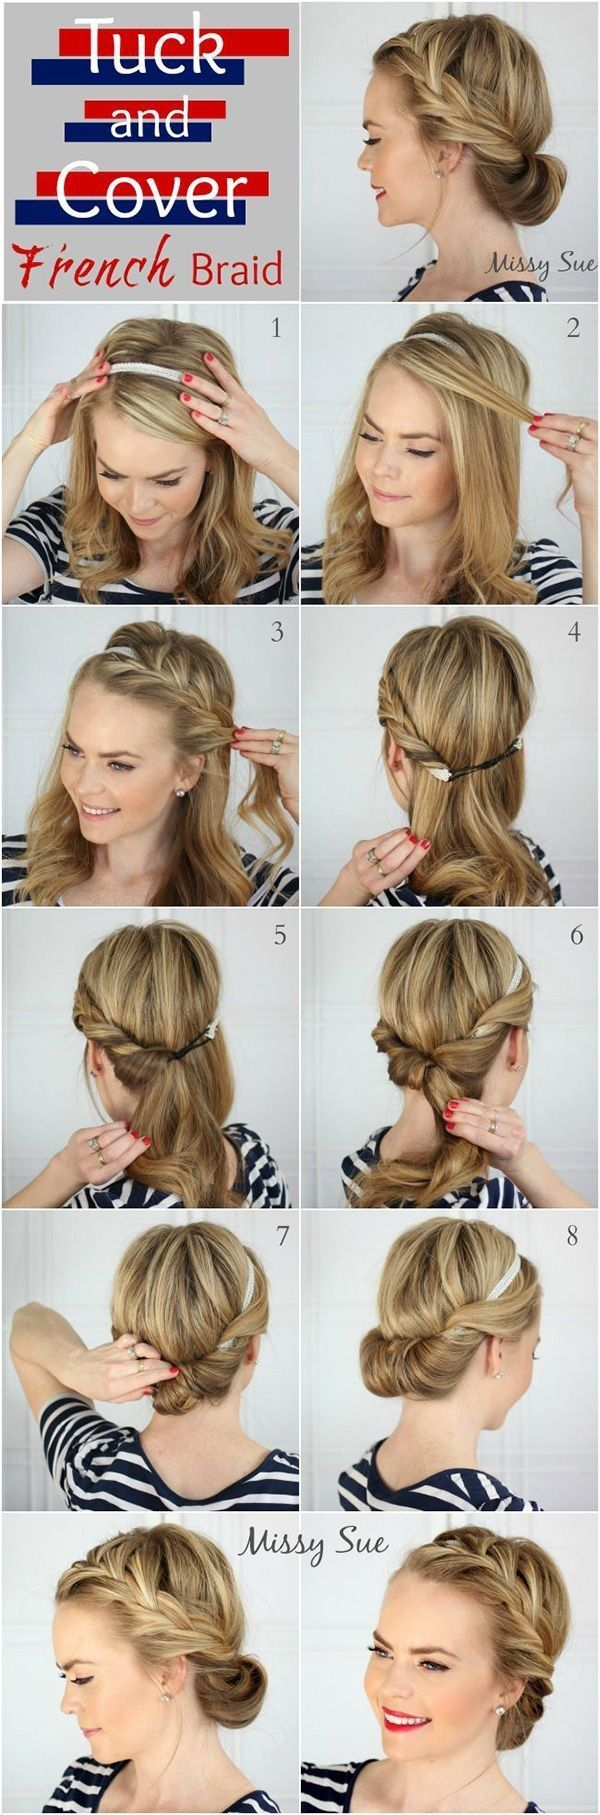 Simple Five Minute Hairstyles For Office Women Complete - Bridesmaid hairstyle diy